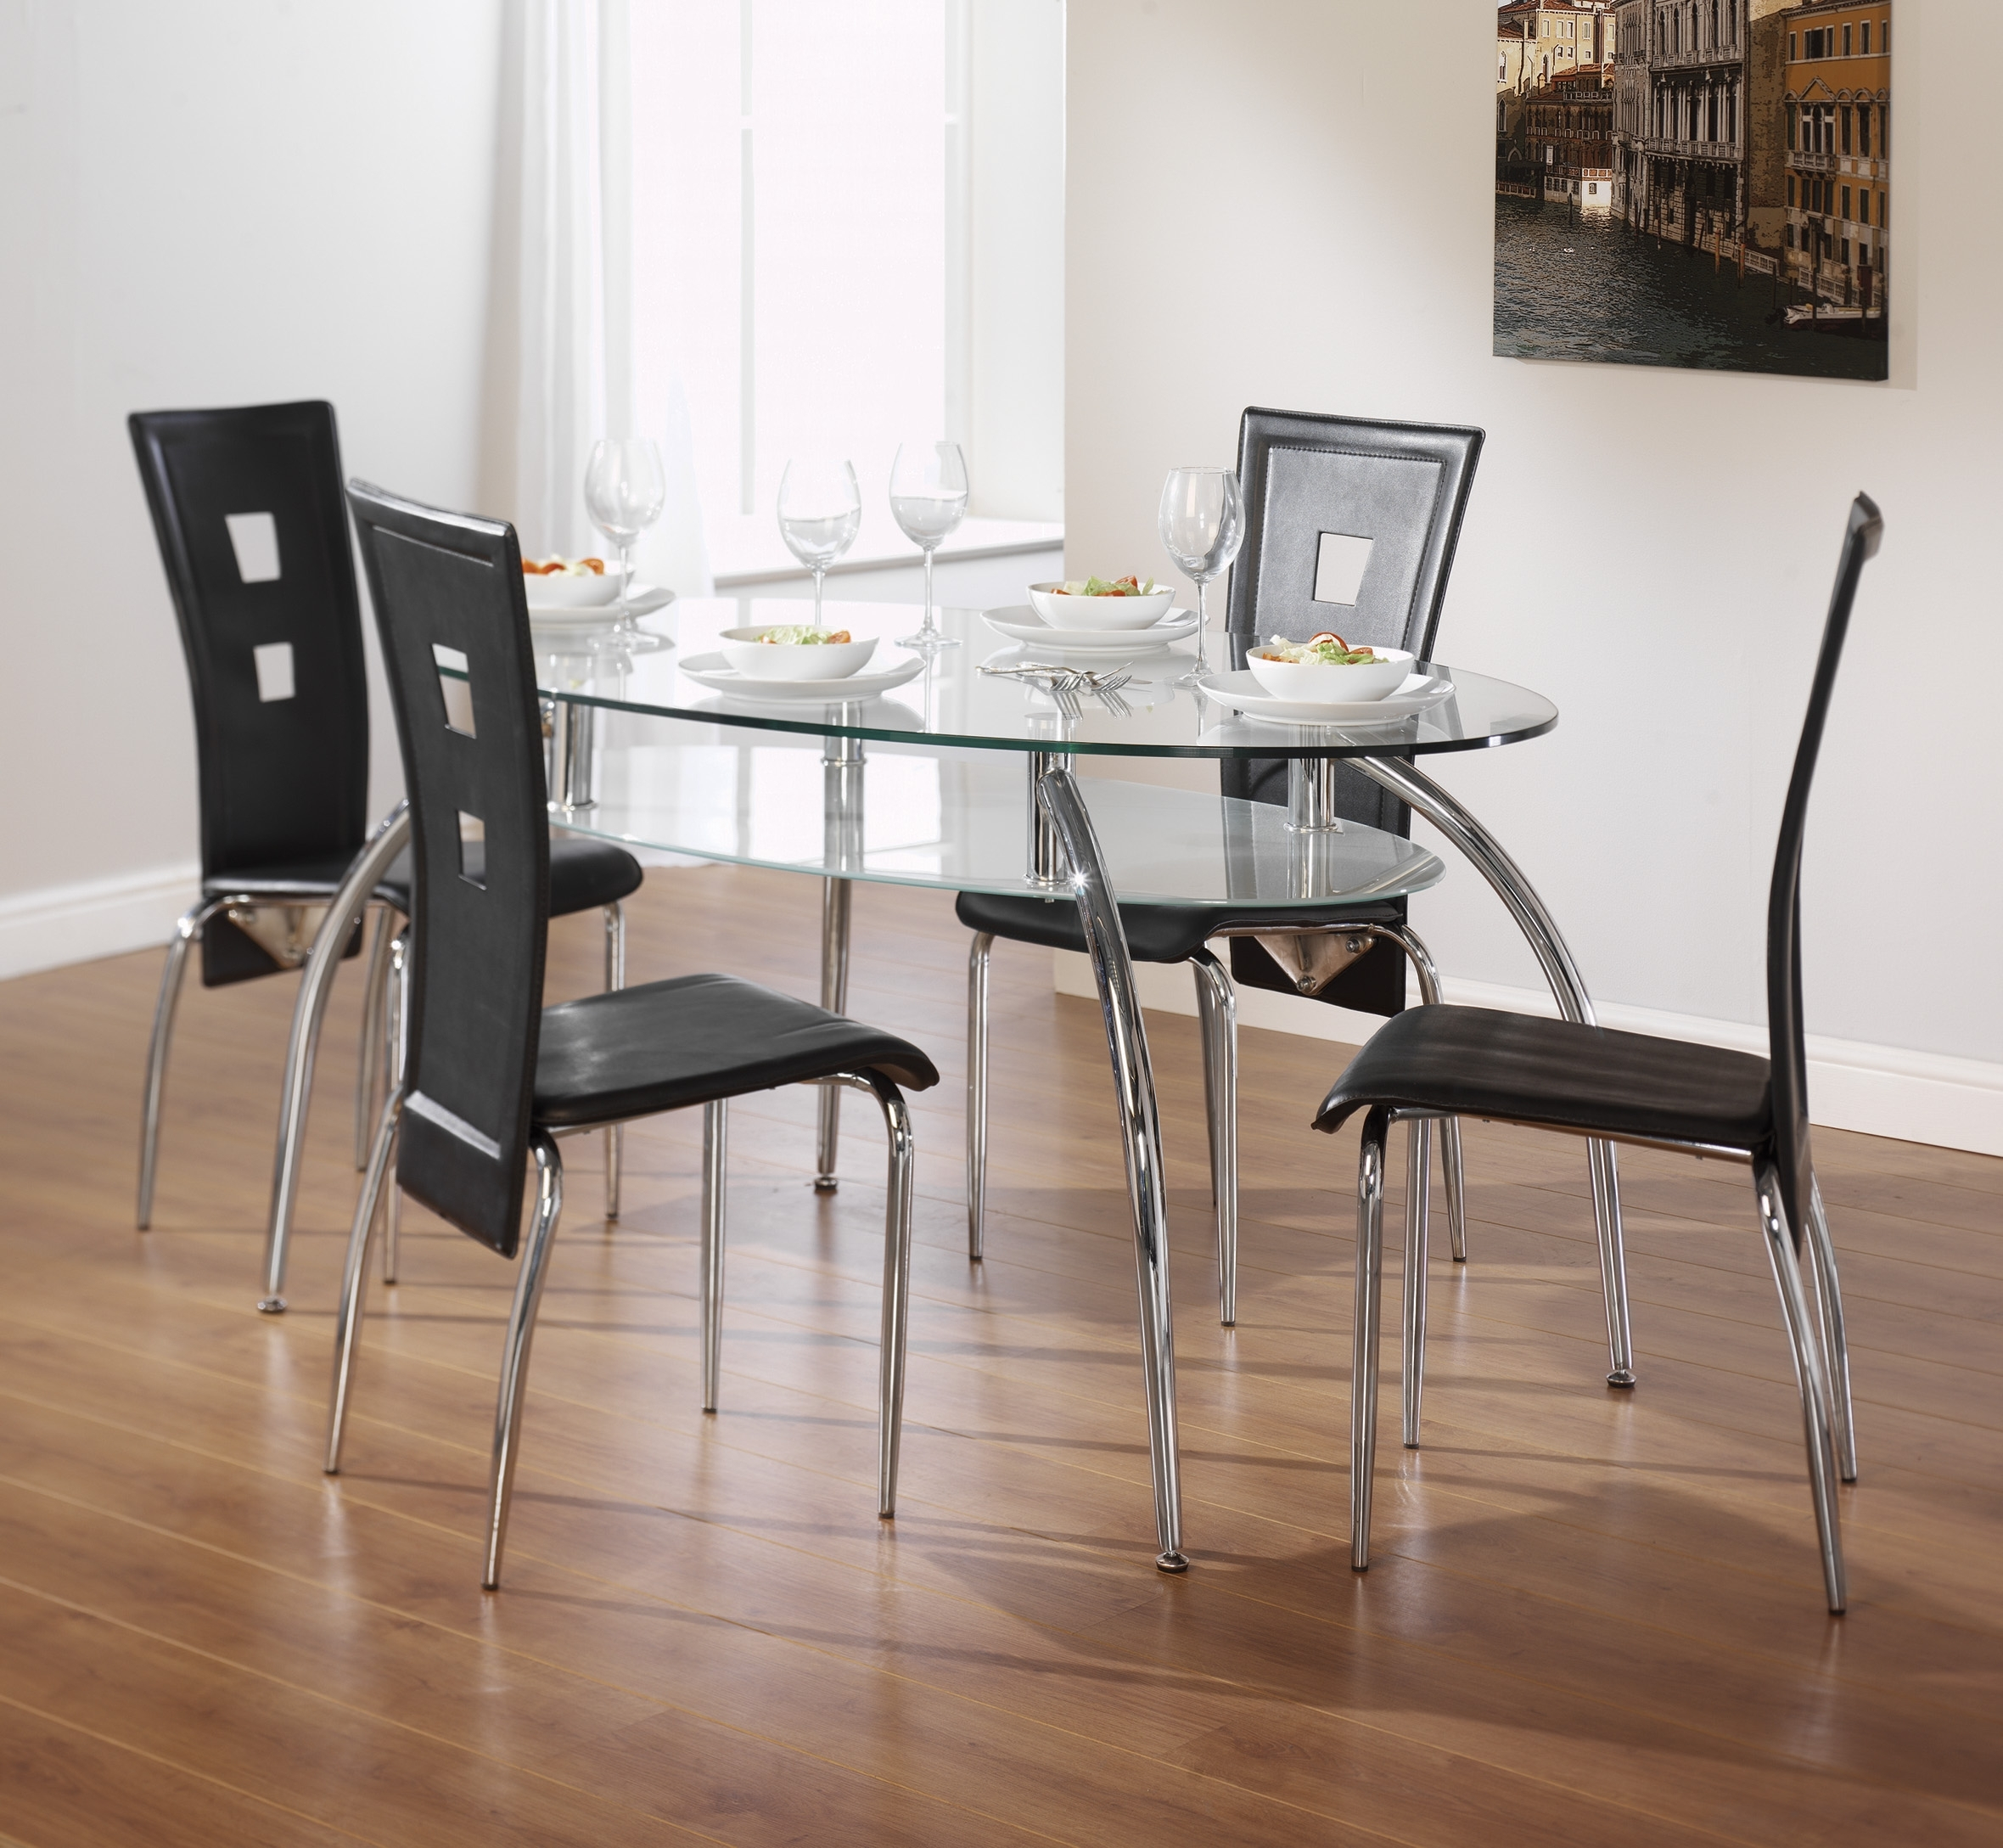 Preferred Dining Tables At Aintree Liquidation Centre Regarding Glass Dining Tables With Oak Legs (View 19 of 25)